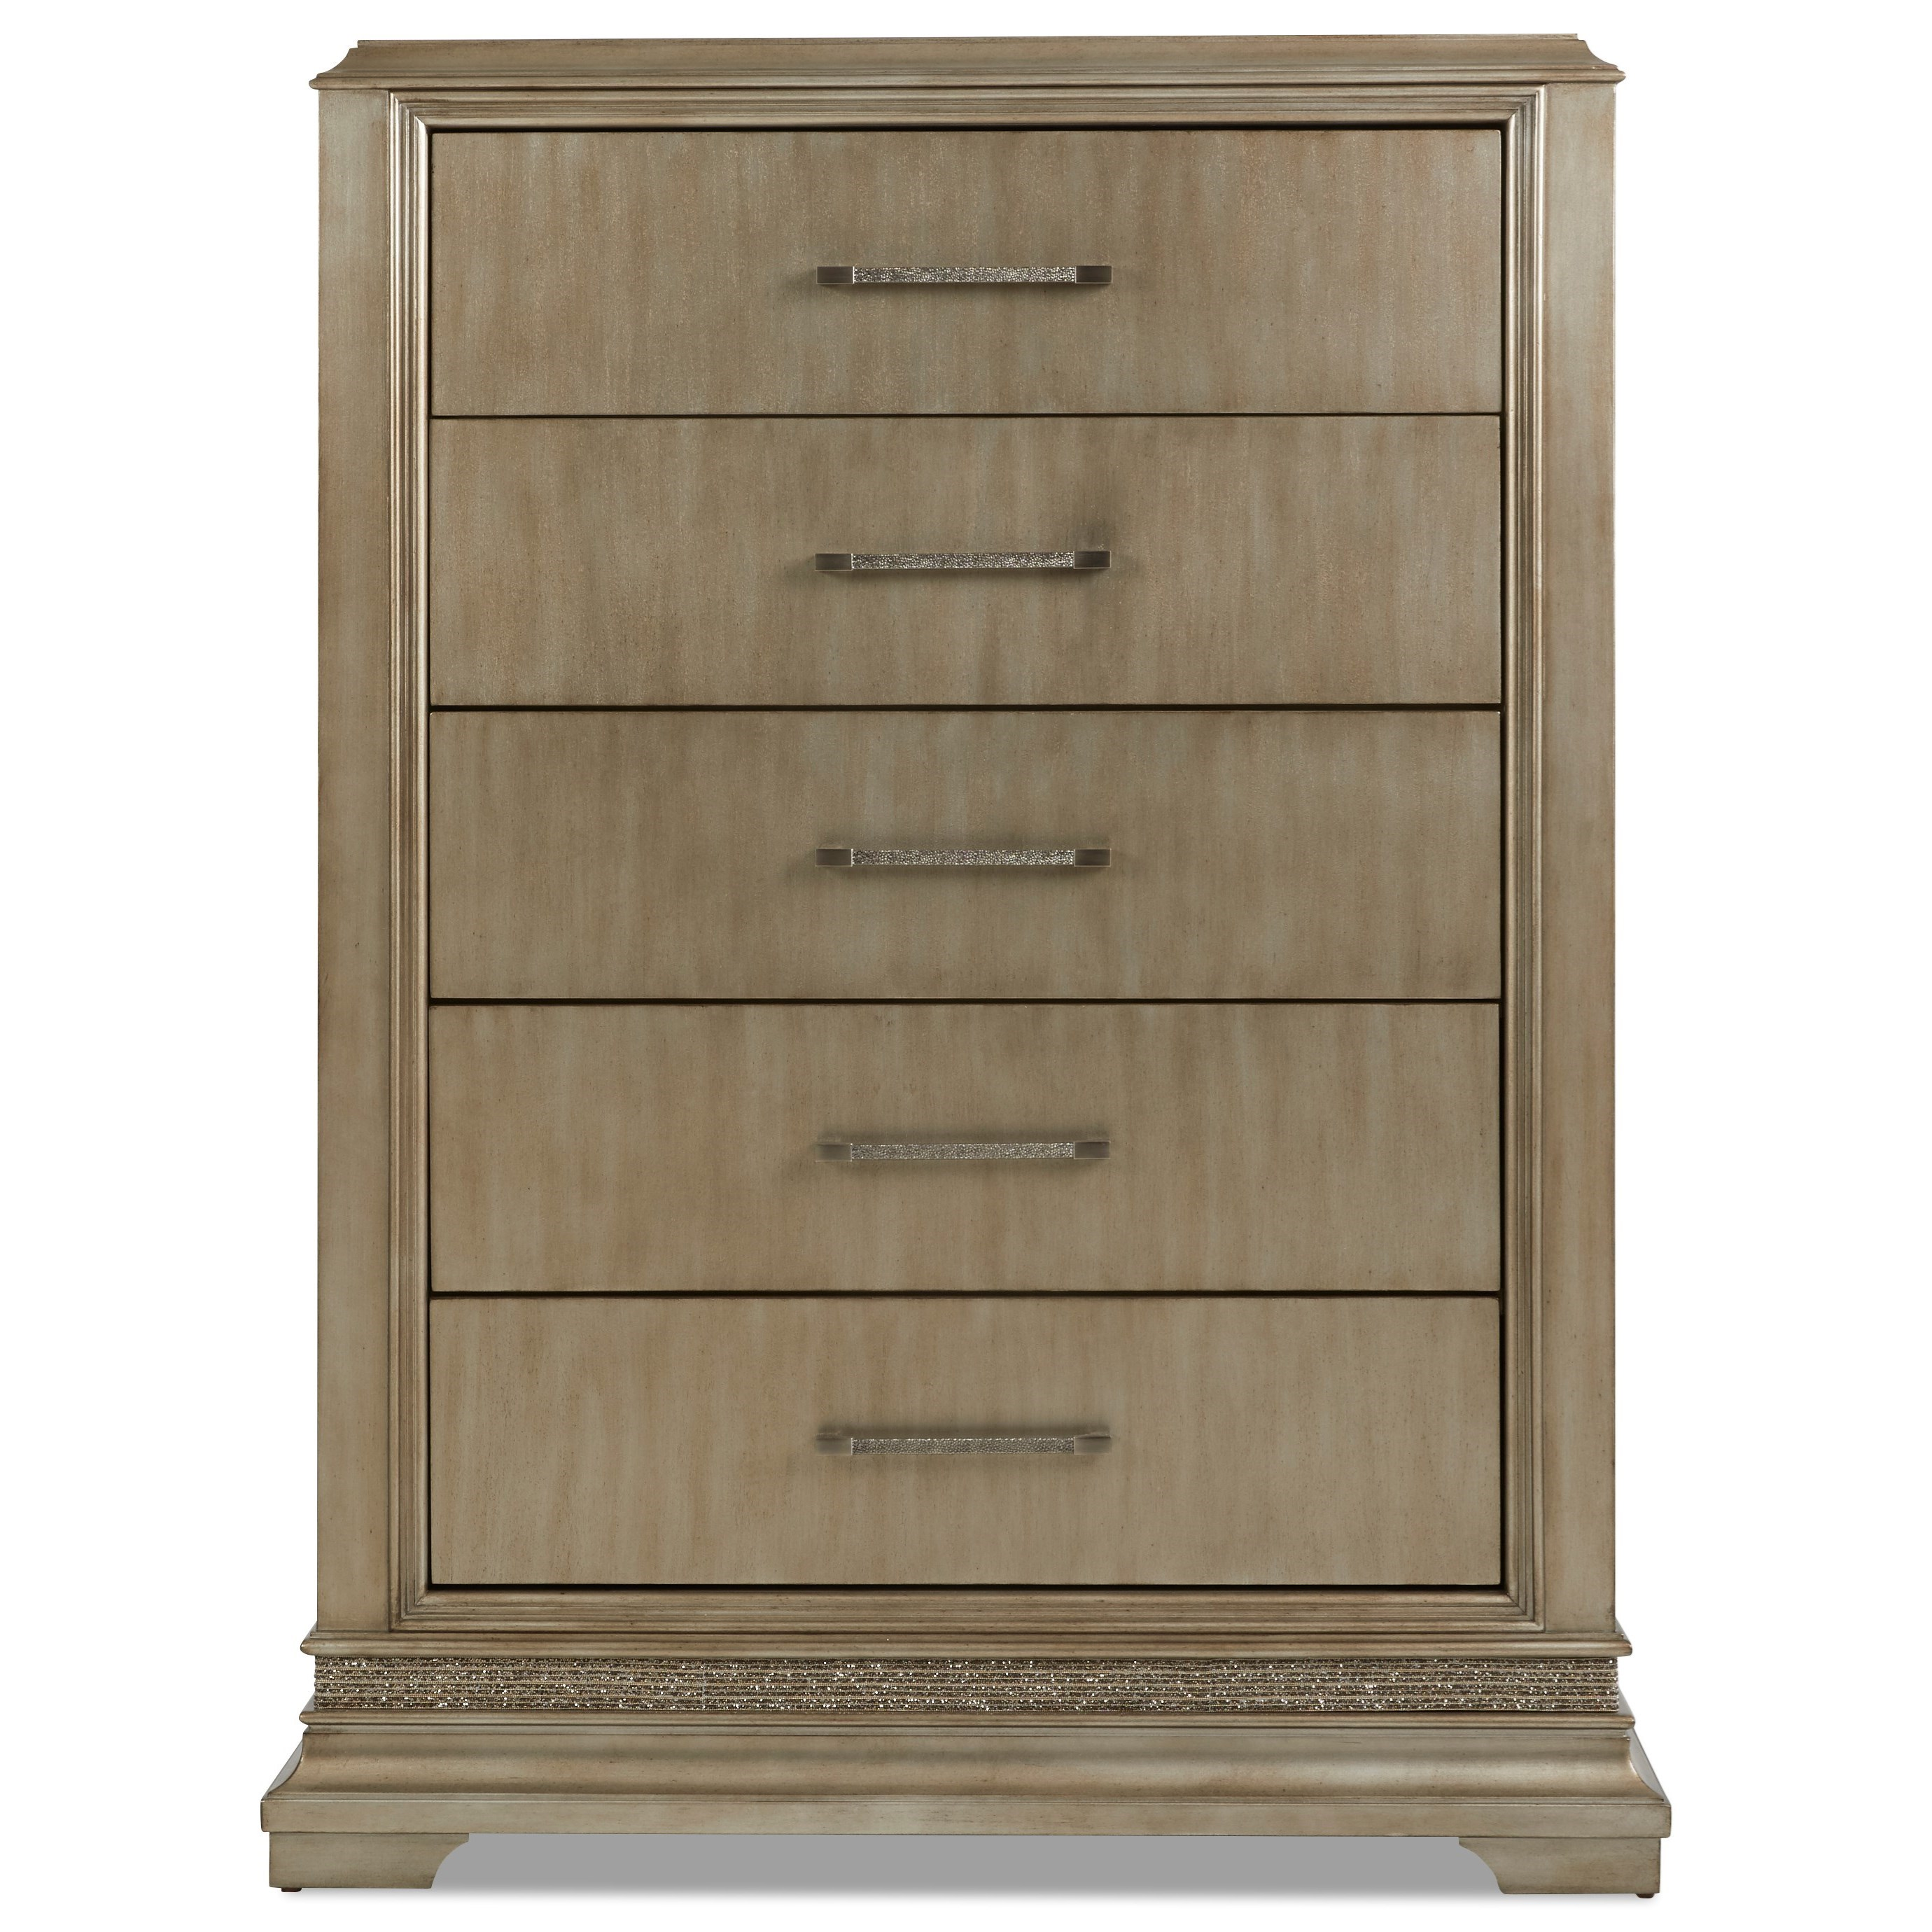 Sophia Drawer Chest by Klaussner International at Beck's Furniture